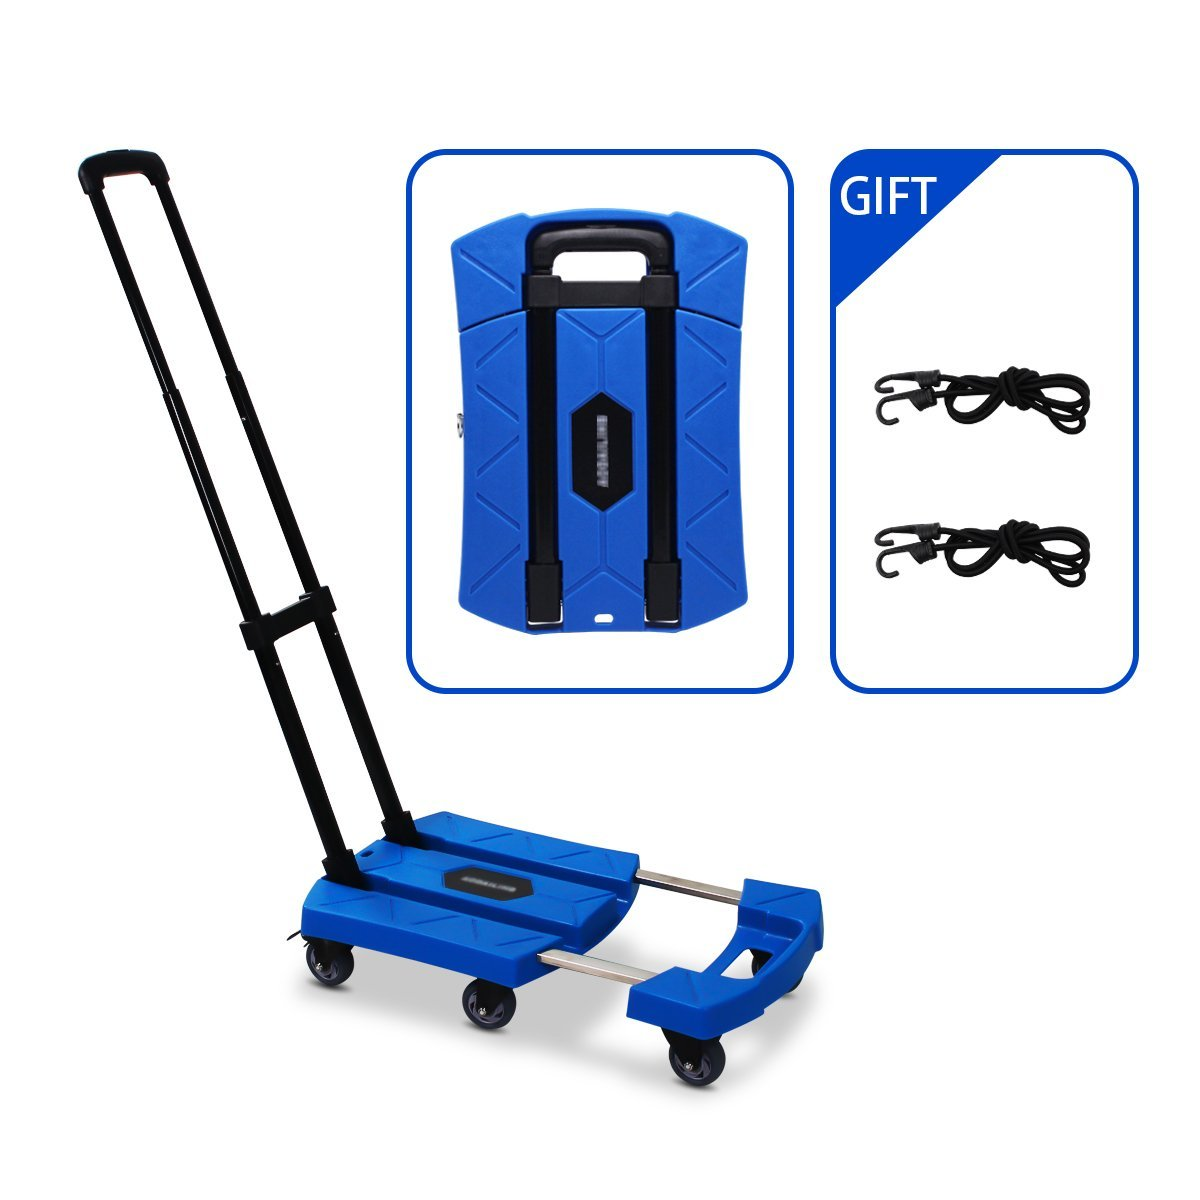 Portable Folding Luggage Cart with 6 Wheels and 2 Free Rope Upgrade Large Wheels with Brakes Withstand 440 Pounds Hand Truck Blue